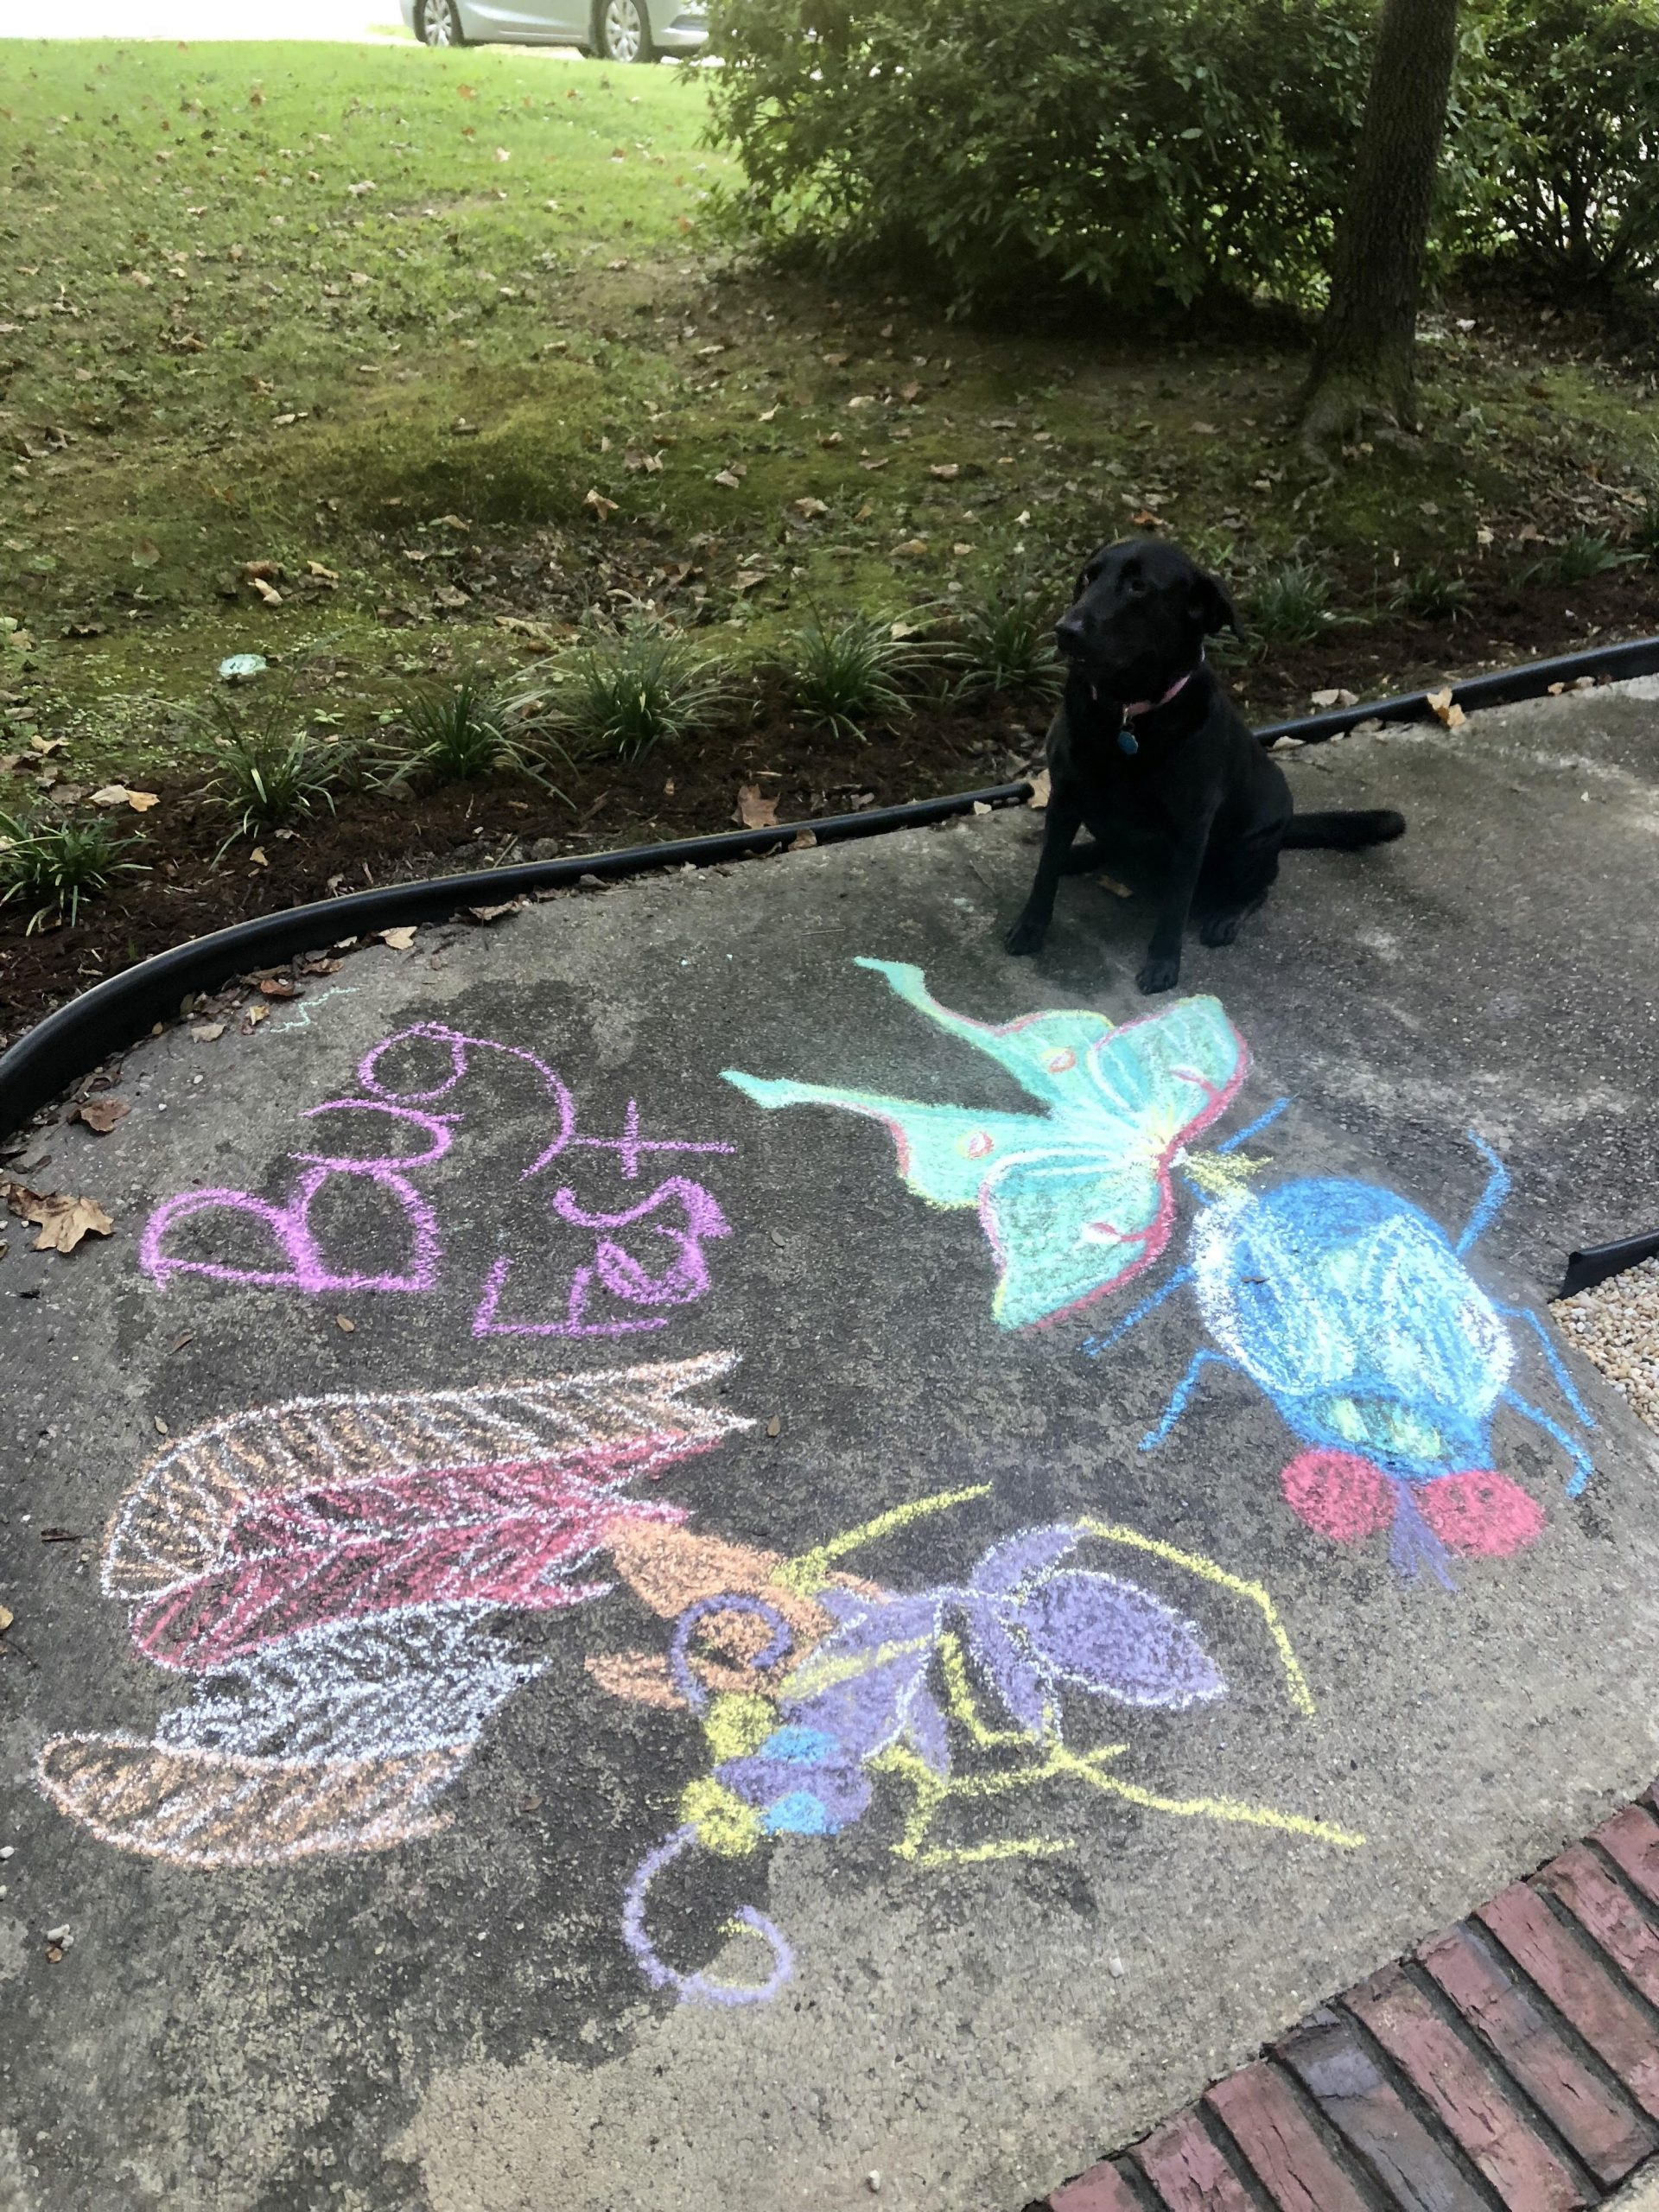 BugFest chalk art and Orchid the dog